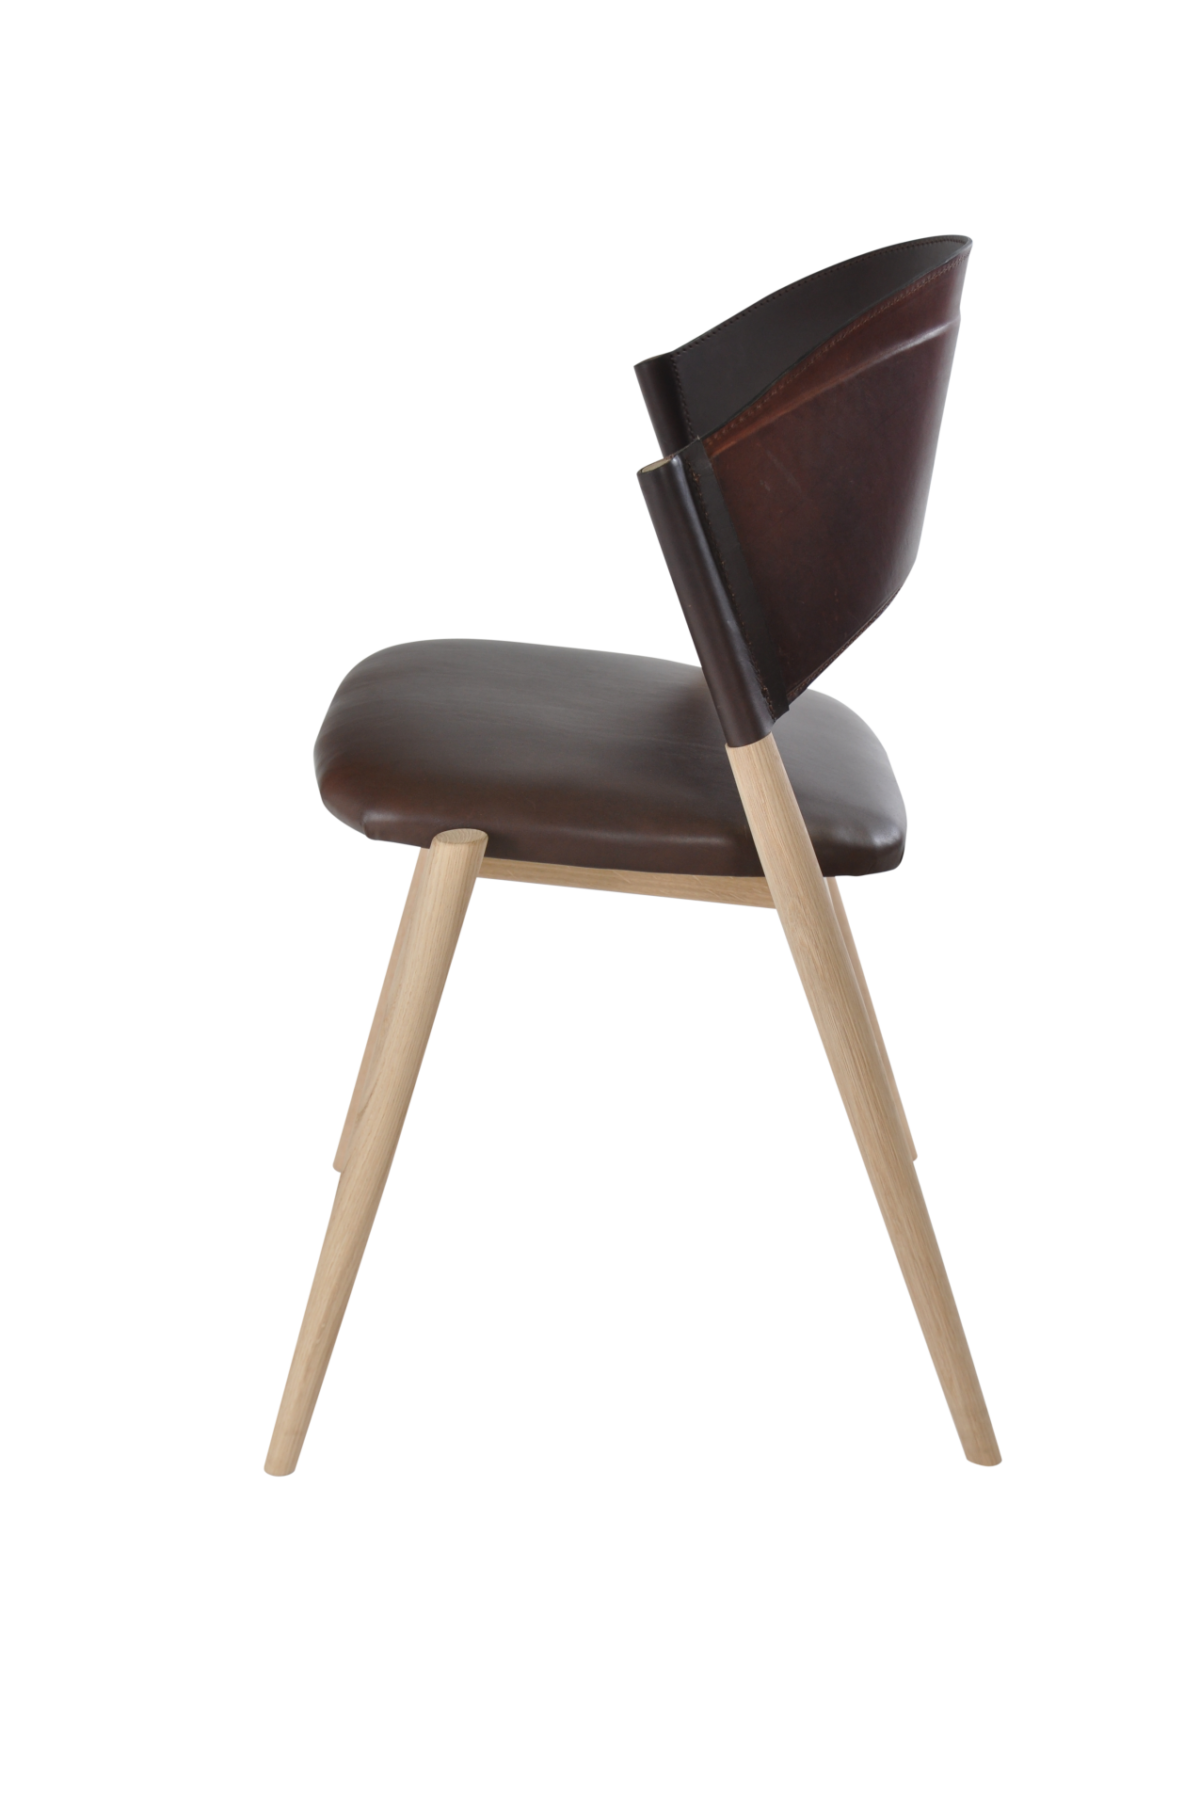 A Chair oak wood mocca leather